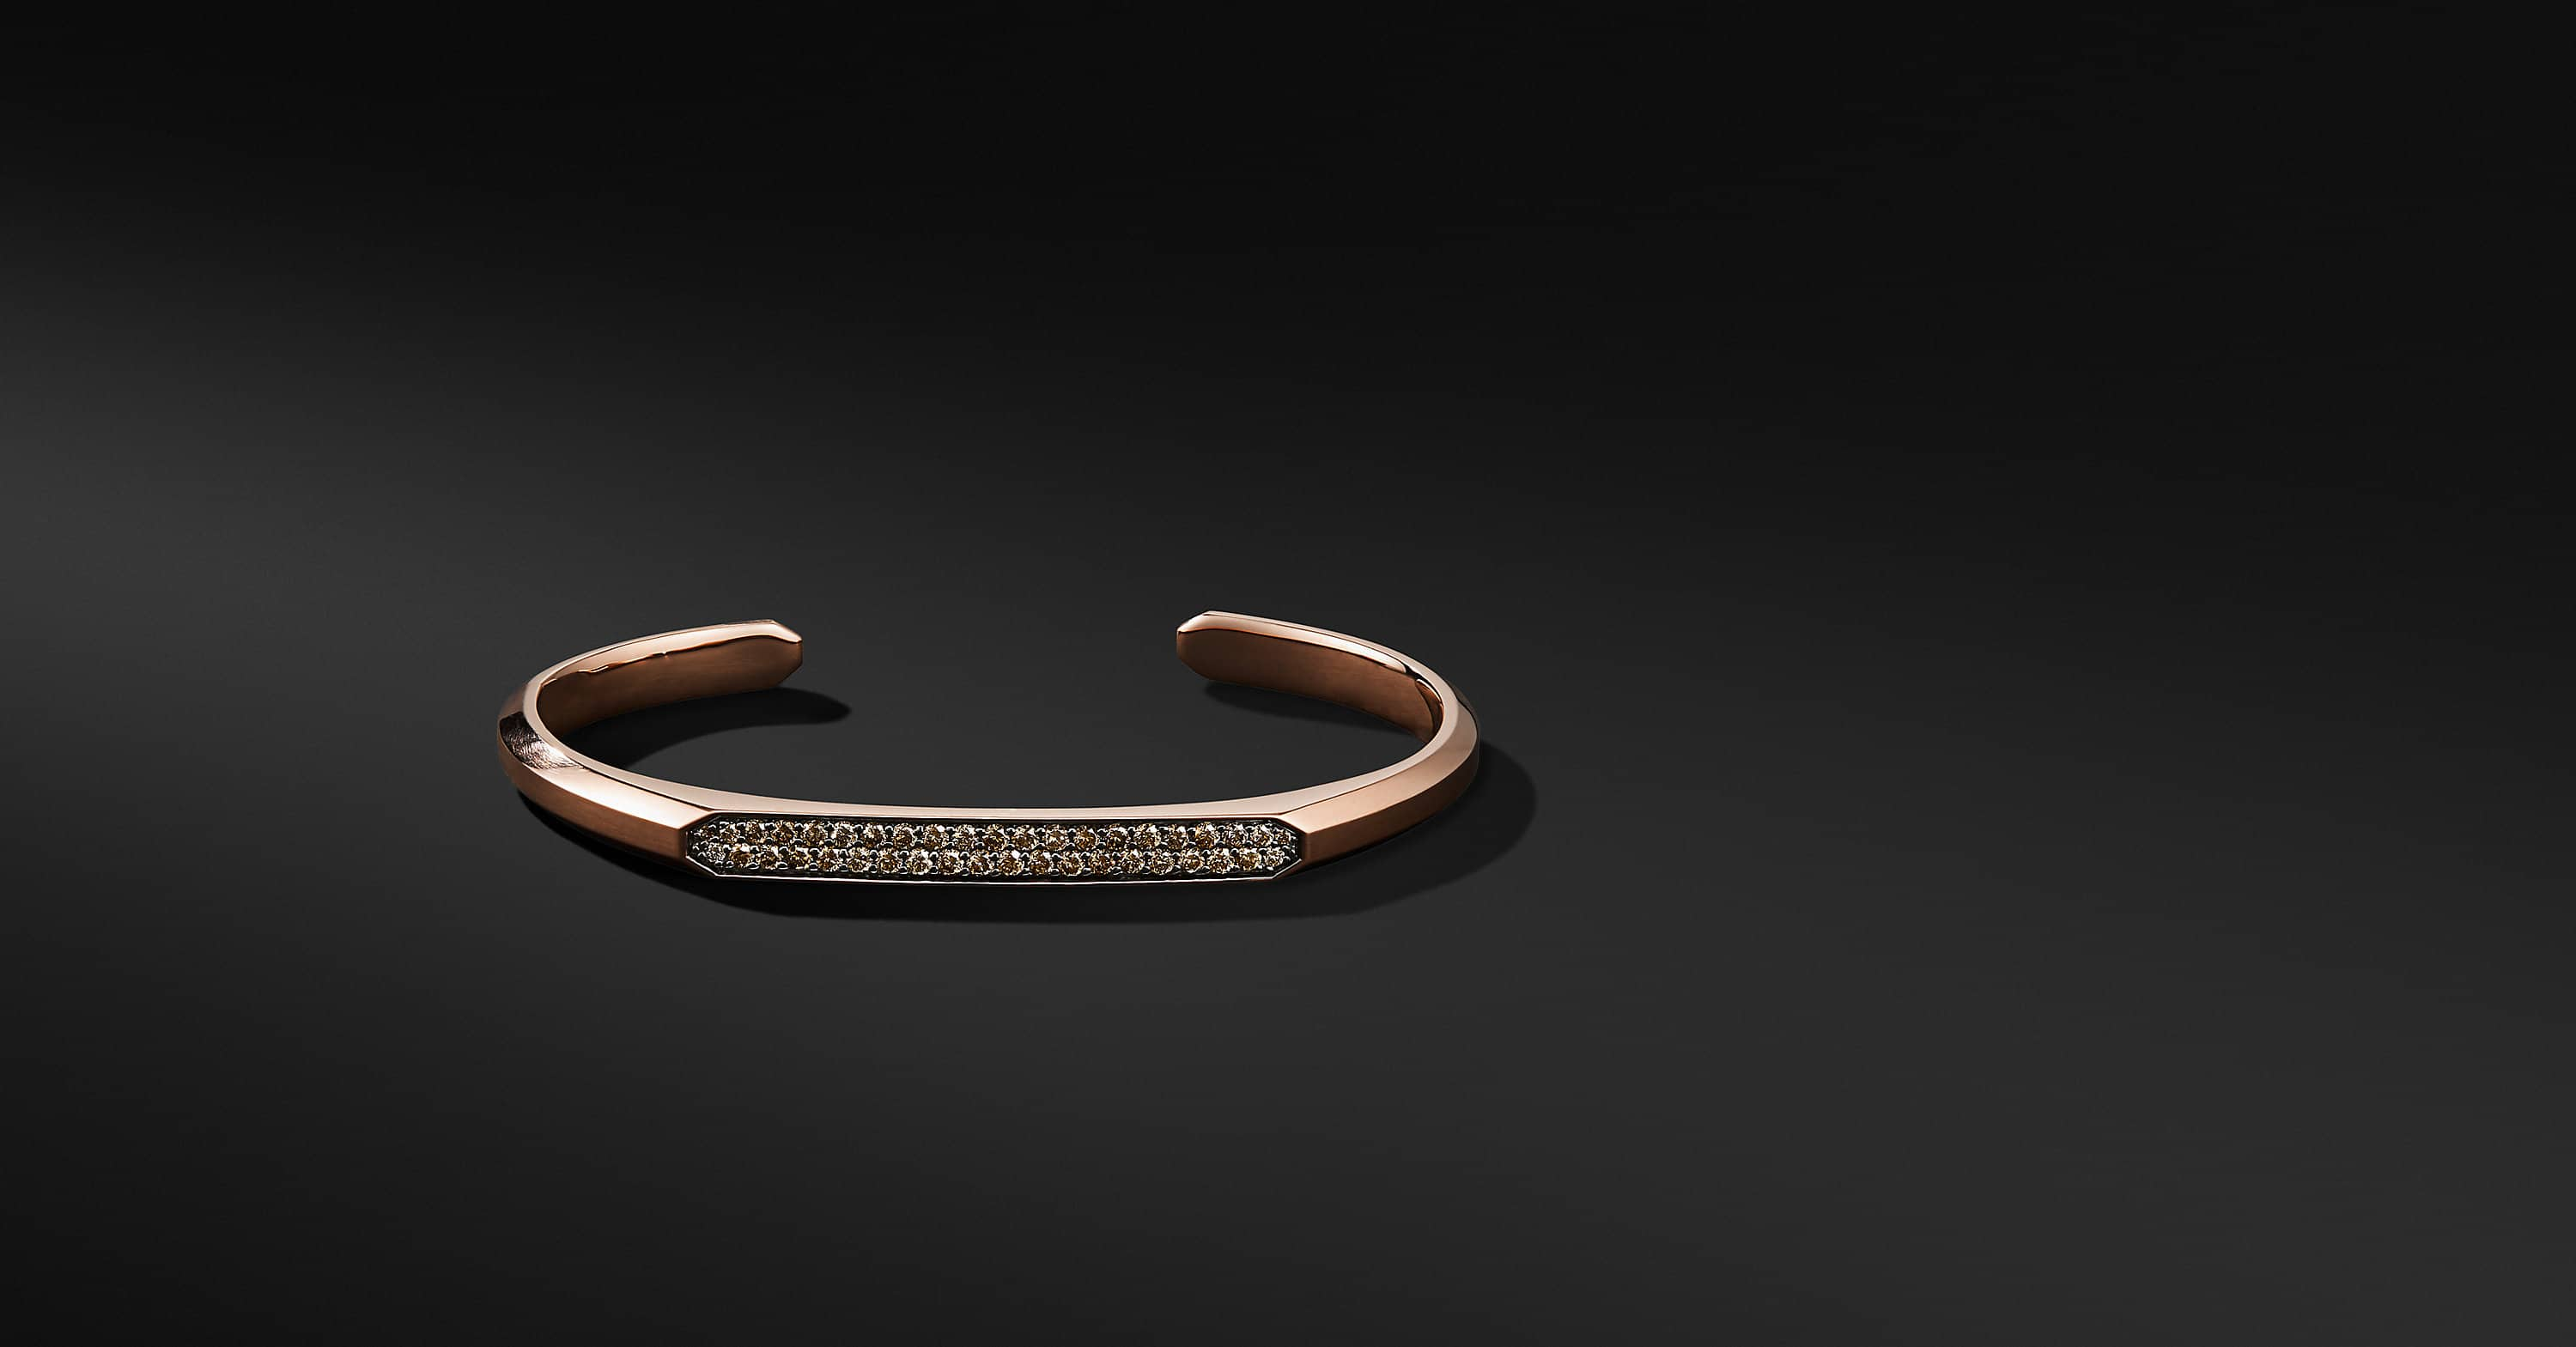 Streamline Cuff Bracelet in 18K Rose Gold with Cognac Diamonds, 5.5mm